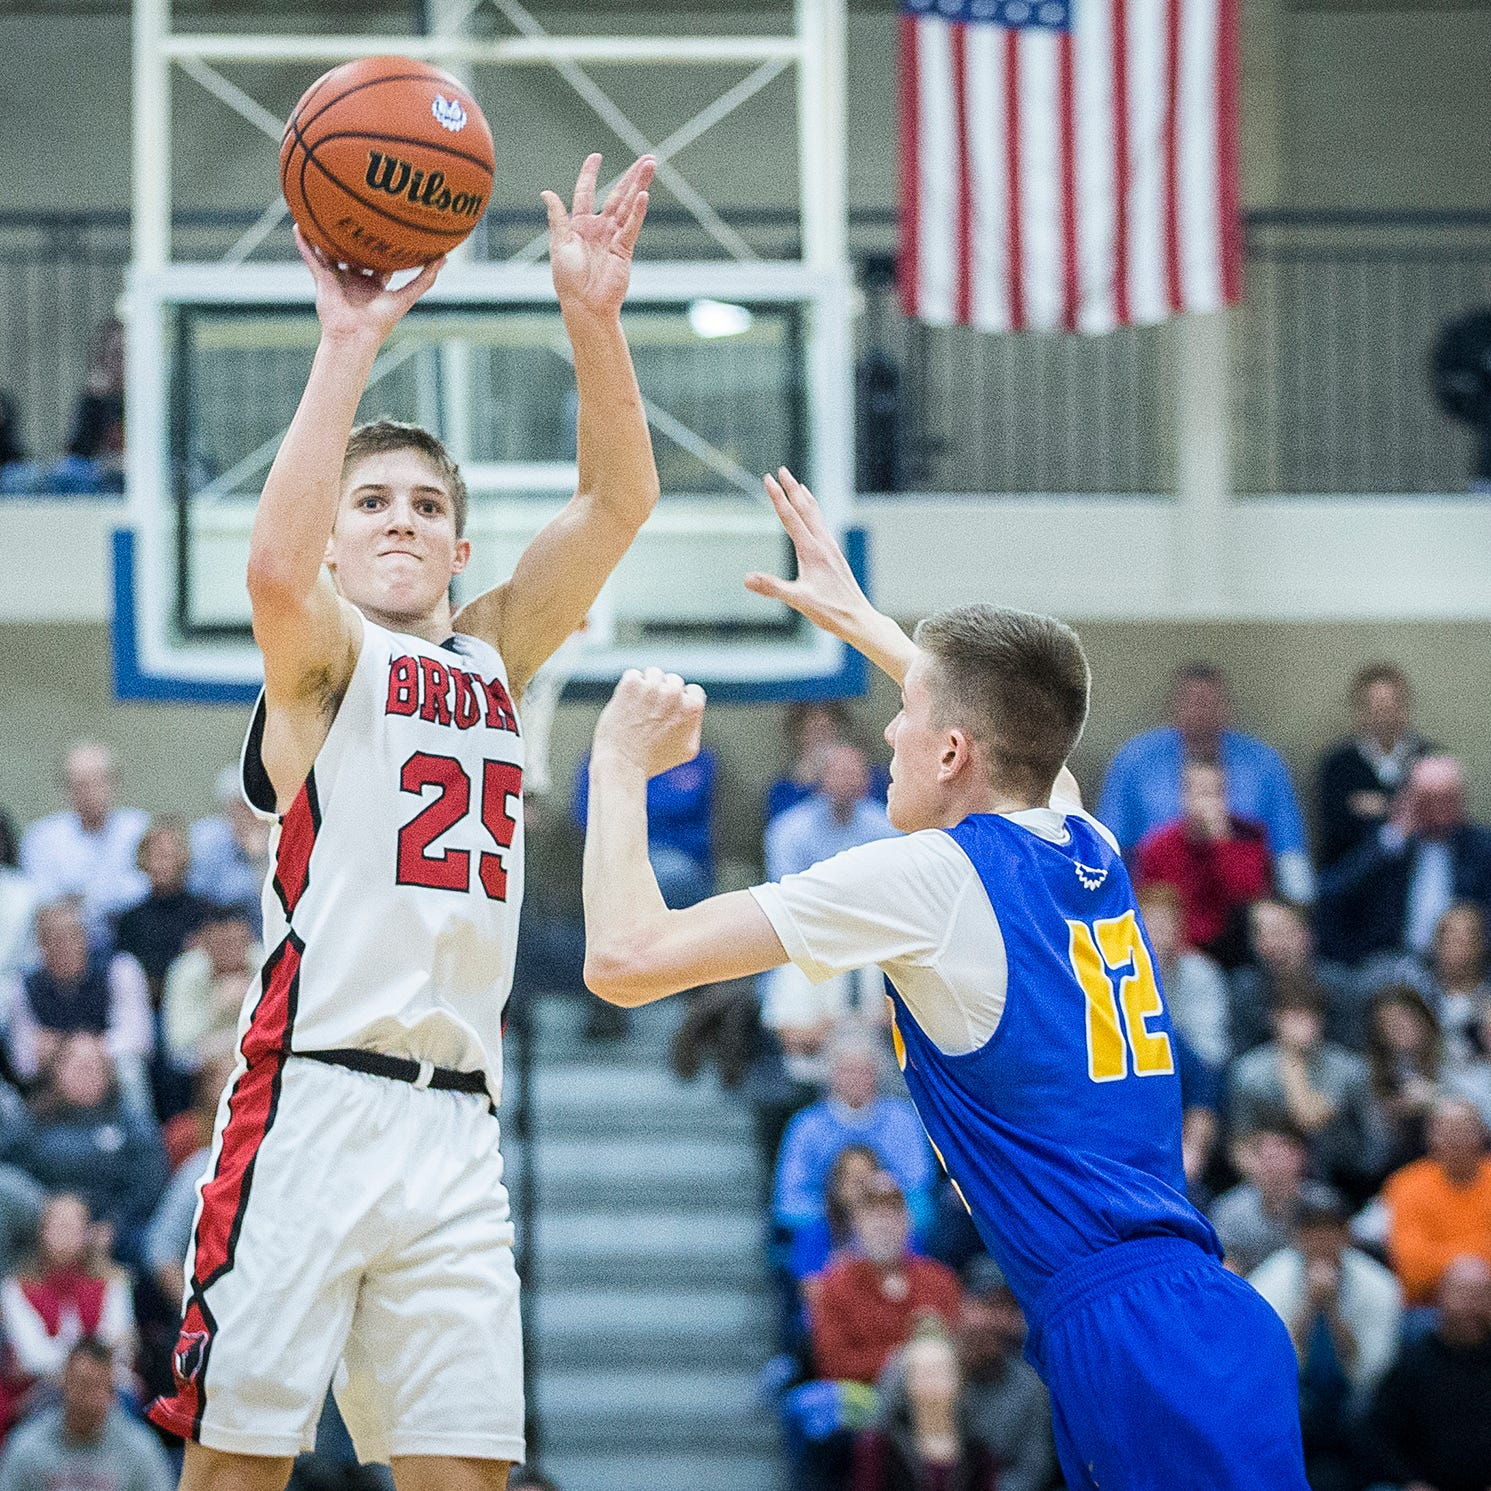 Luke Brown gets scholarship offer from Ball State basketball